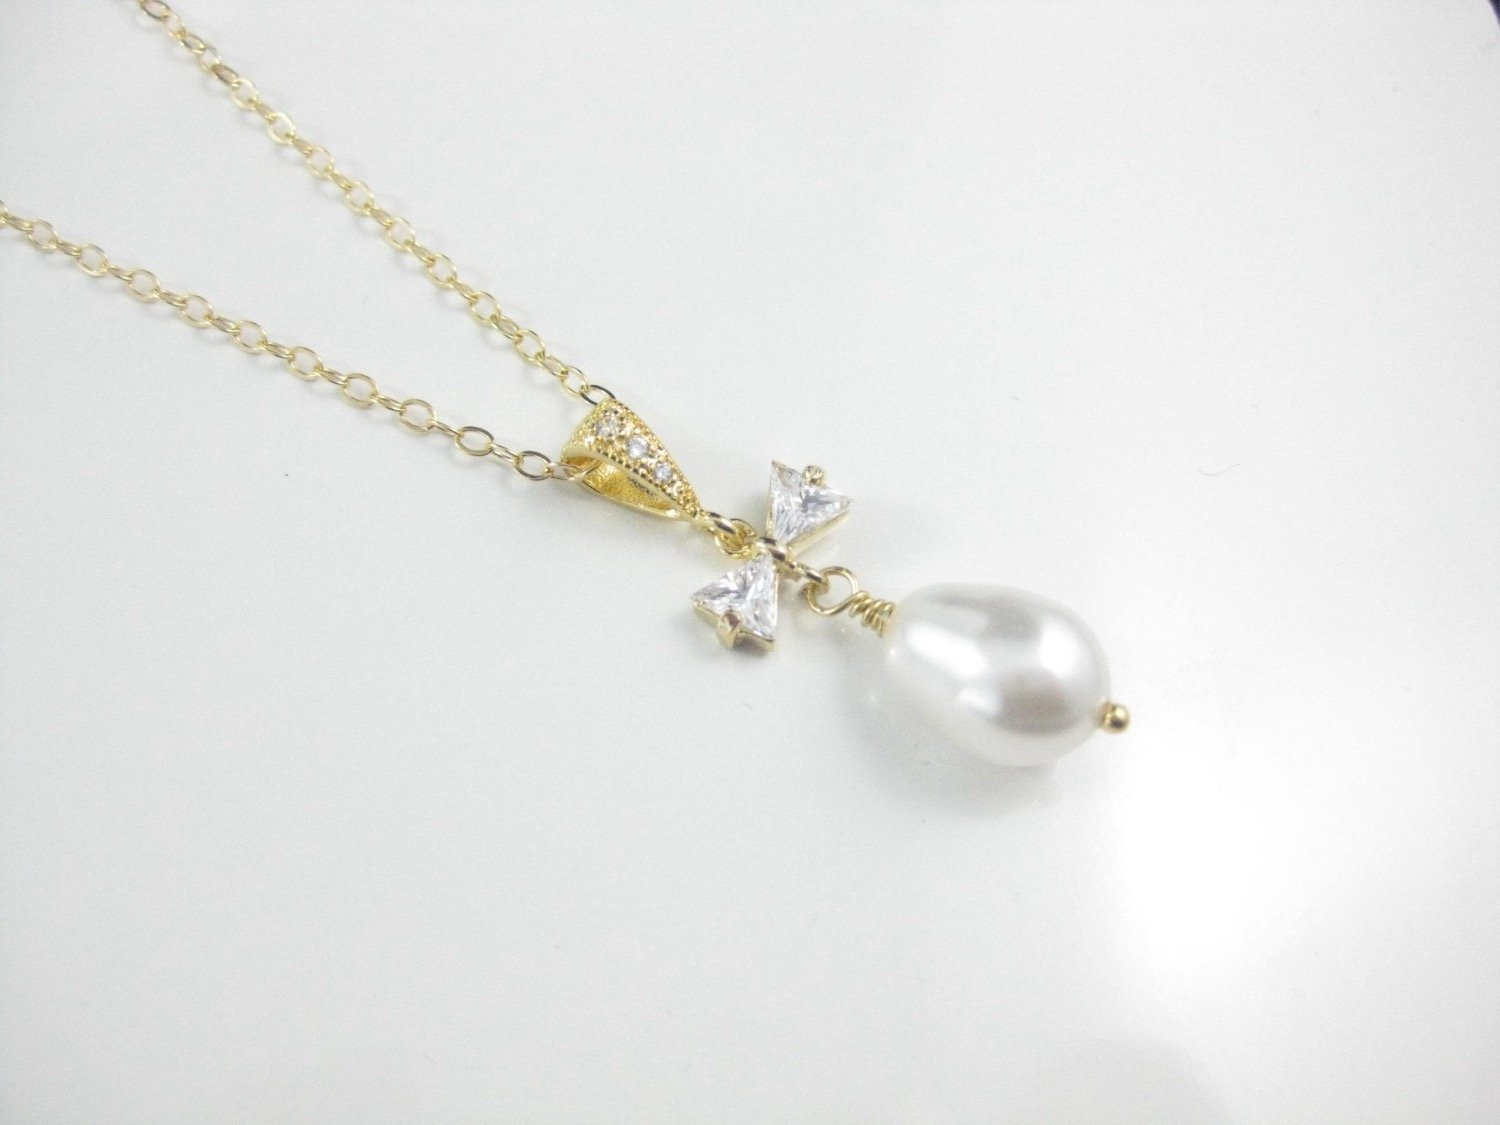 Bridal Jewelry White Pearl and Gold Necklace with Pearl Pendant - Clairesbridal - 3